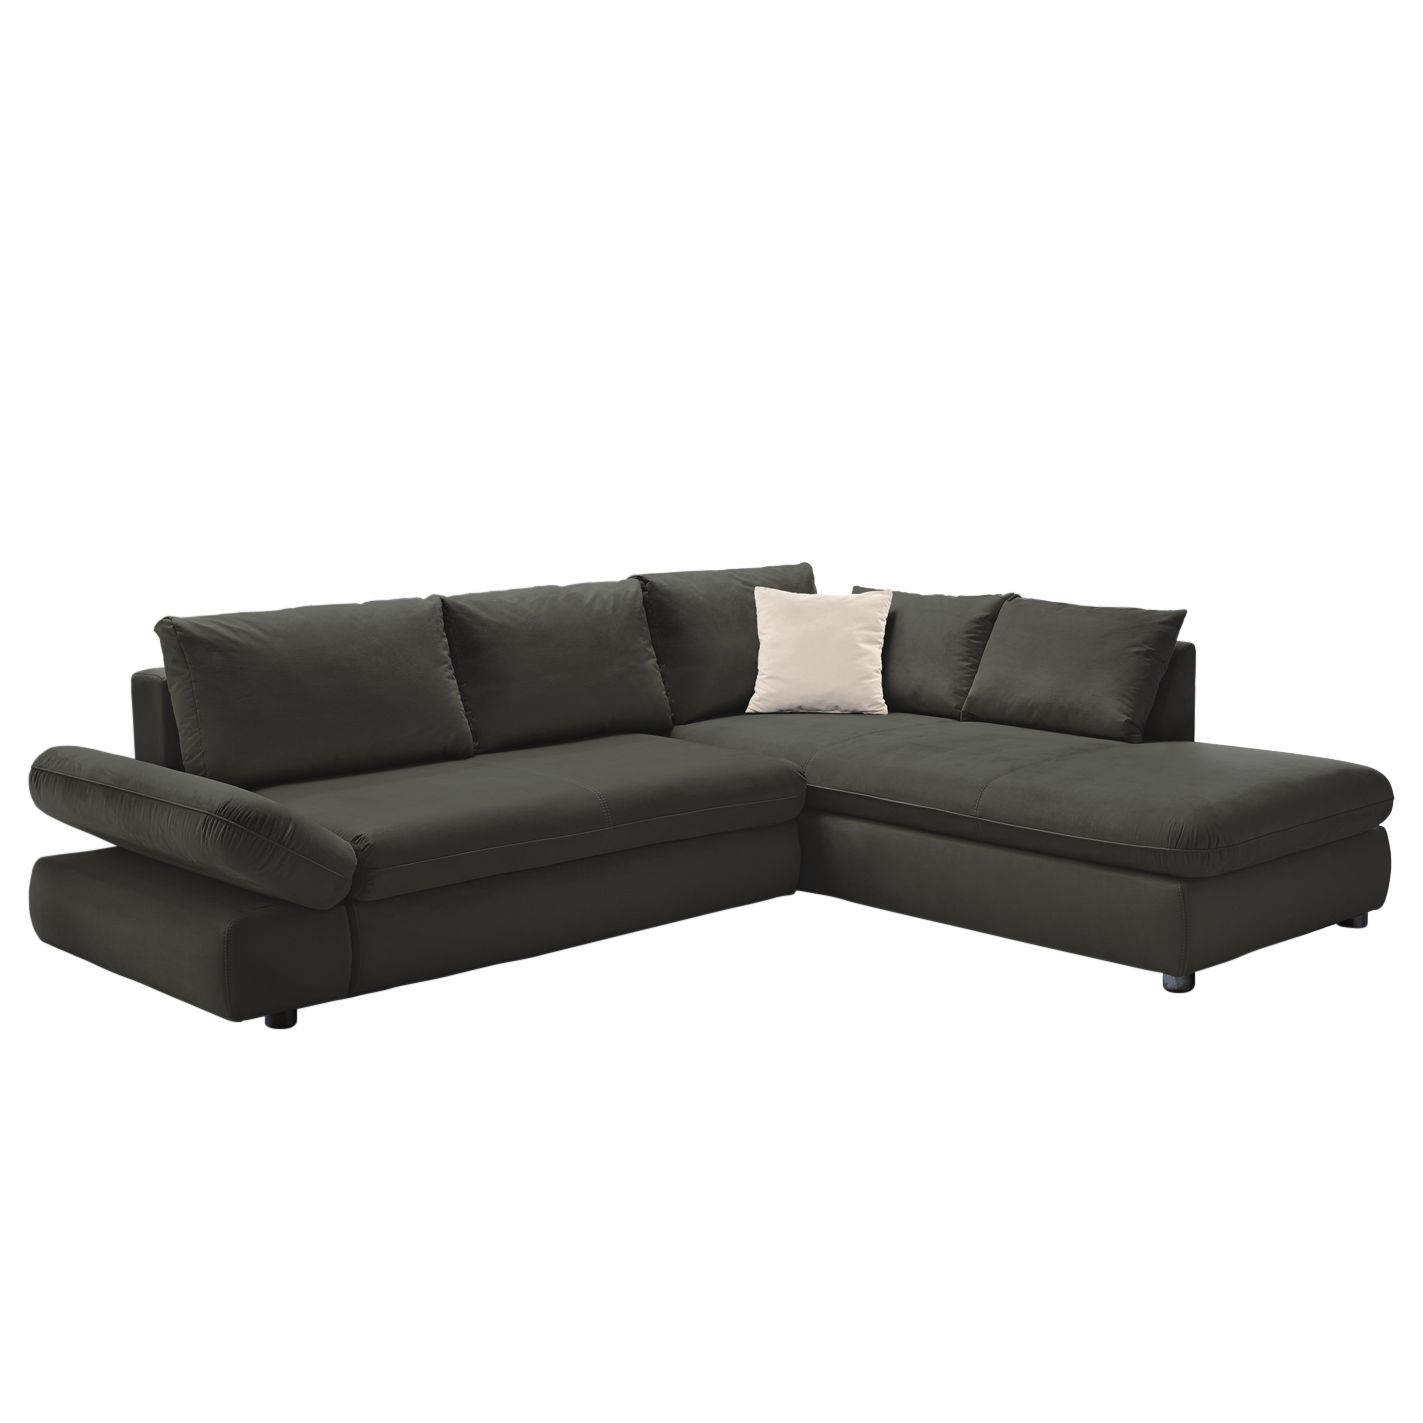 ecksofa mit schlaffunktion landhausstil inspirierendes design f r wohnm bel. Black Bedroom Furniture Sets. Home Design Ideas